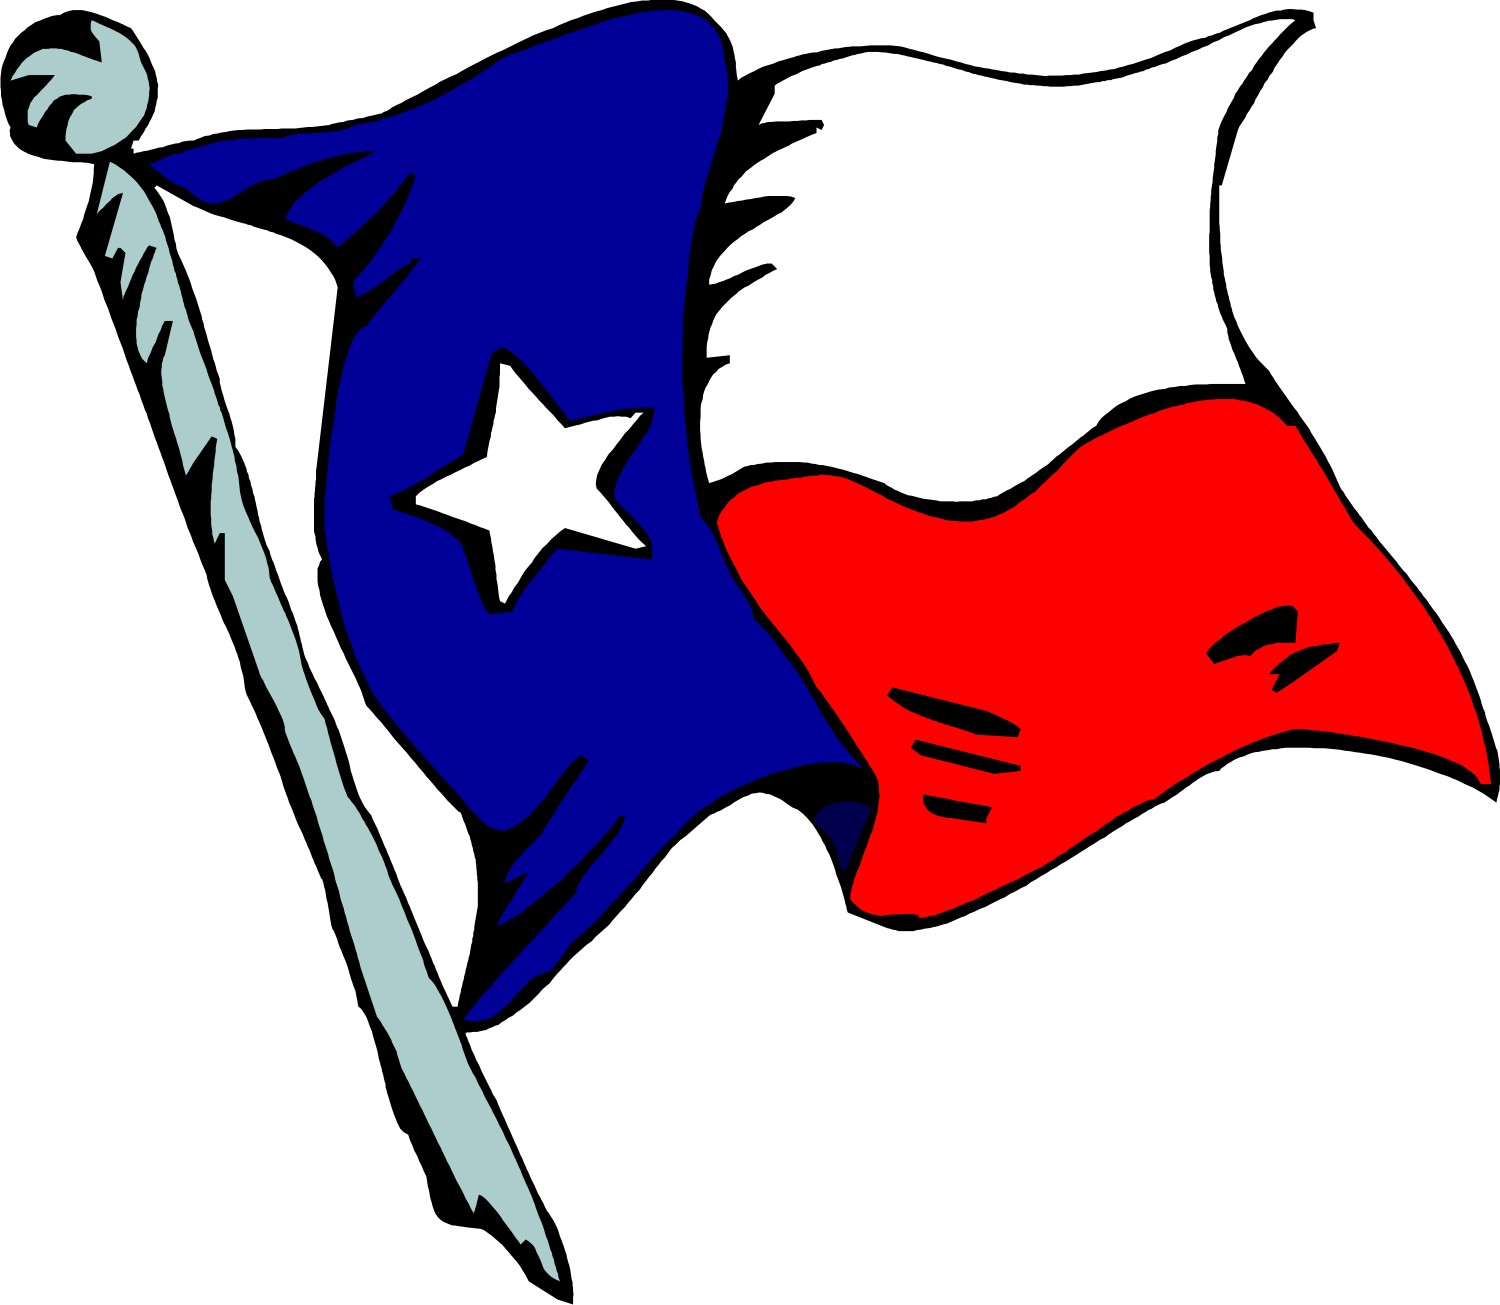 1500x1305 State Of Texas Outline Clip Art Free Vector For Download 9